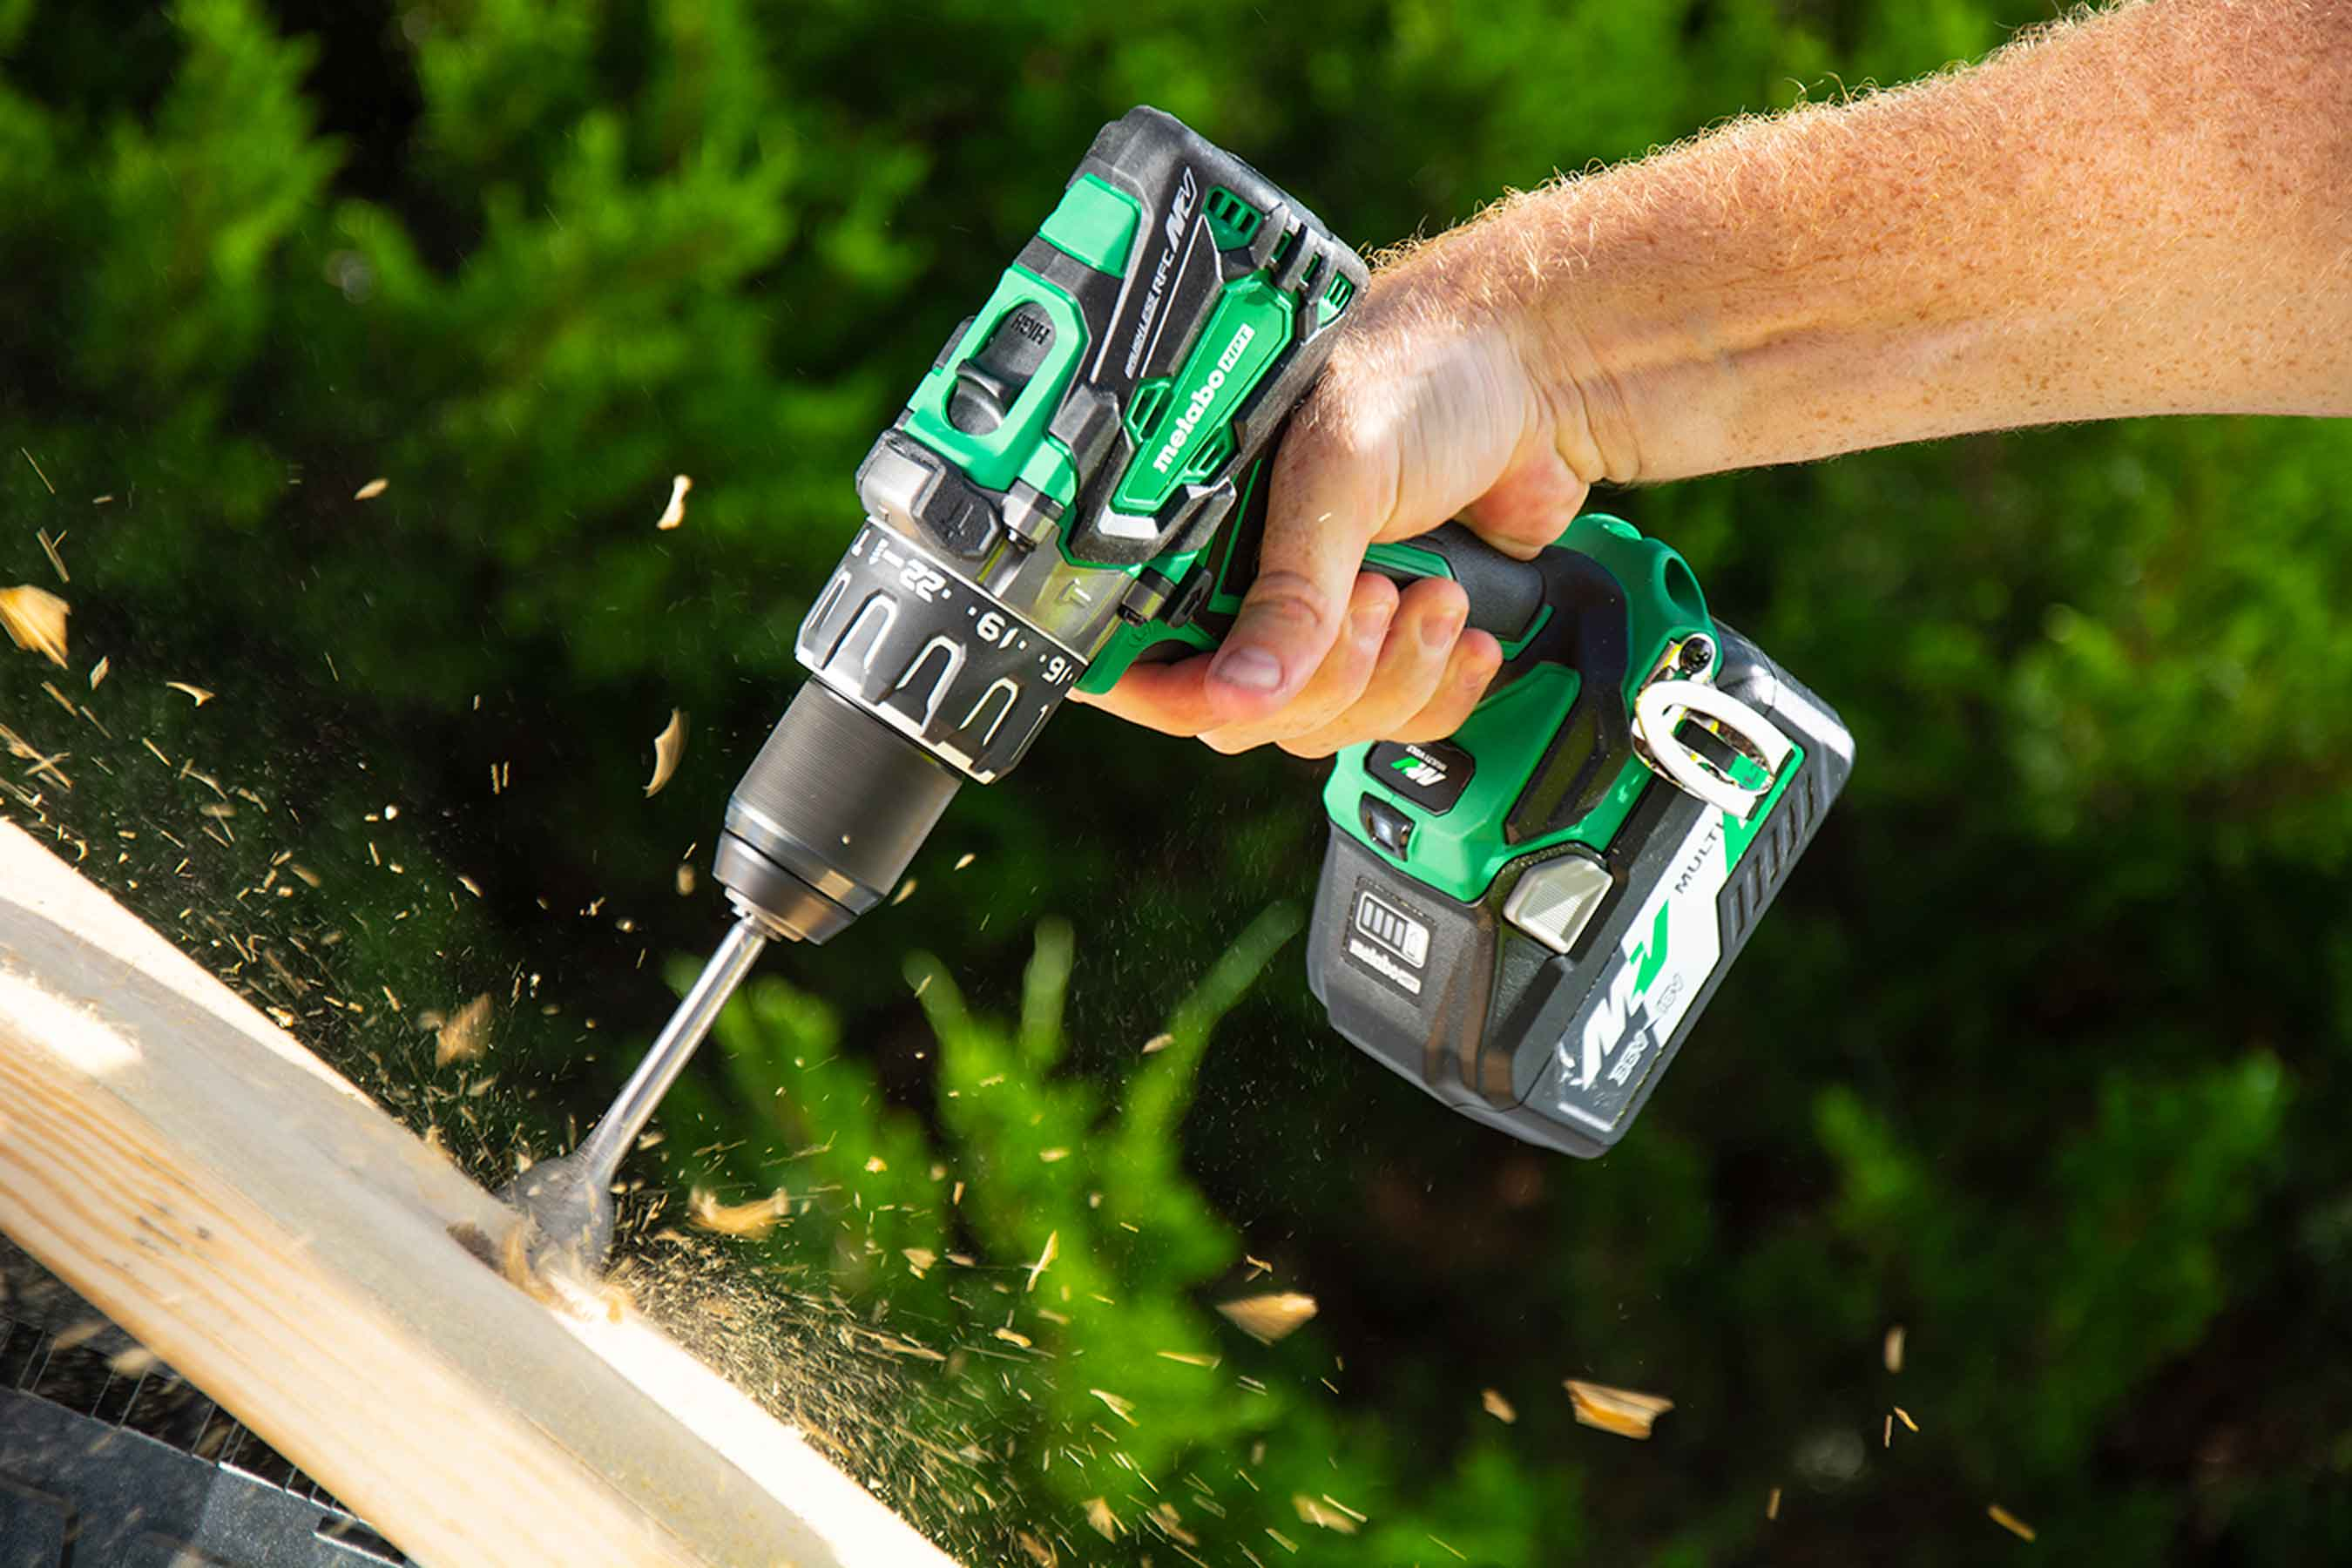 Multivolt Hammer Drill ACTION 1